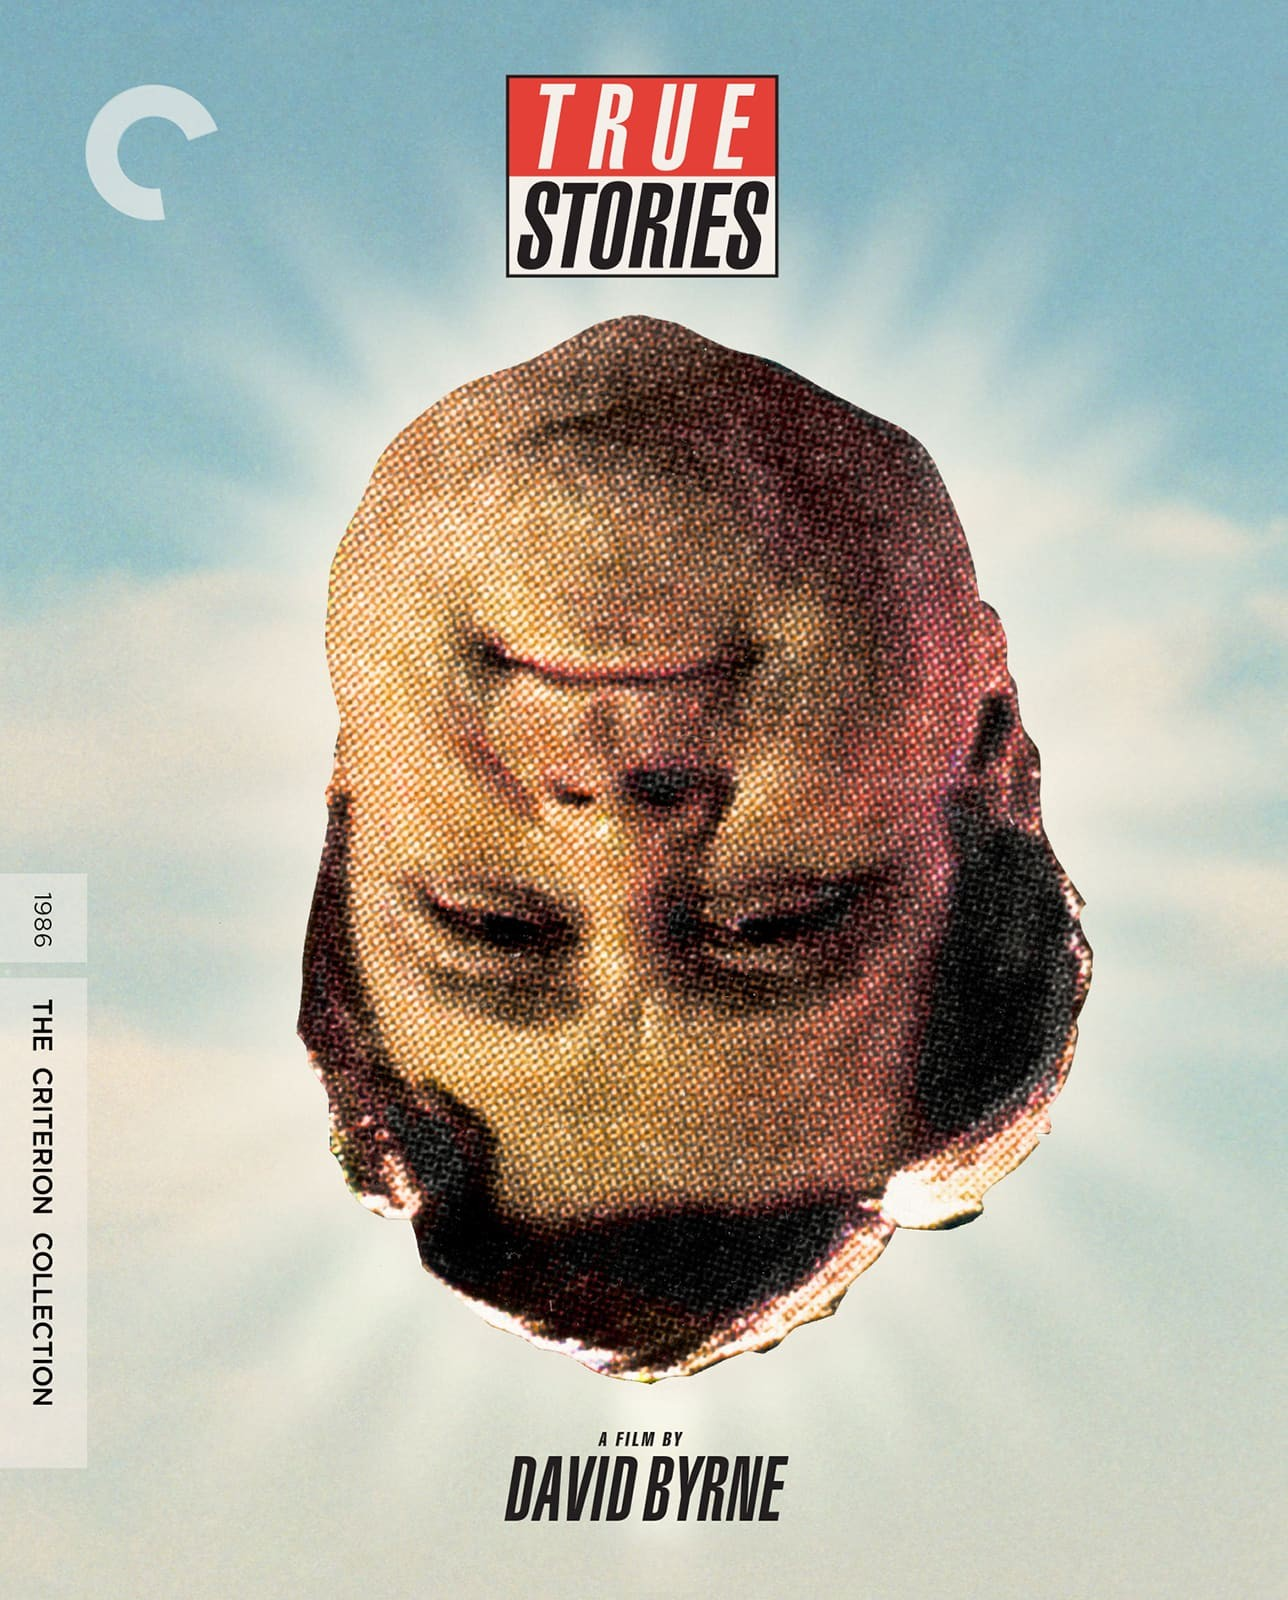 True Stories (1986) | The Criterion Collection